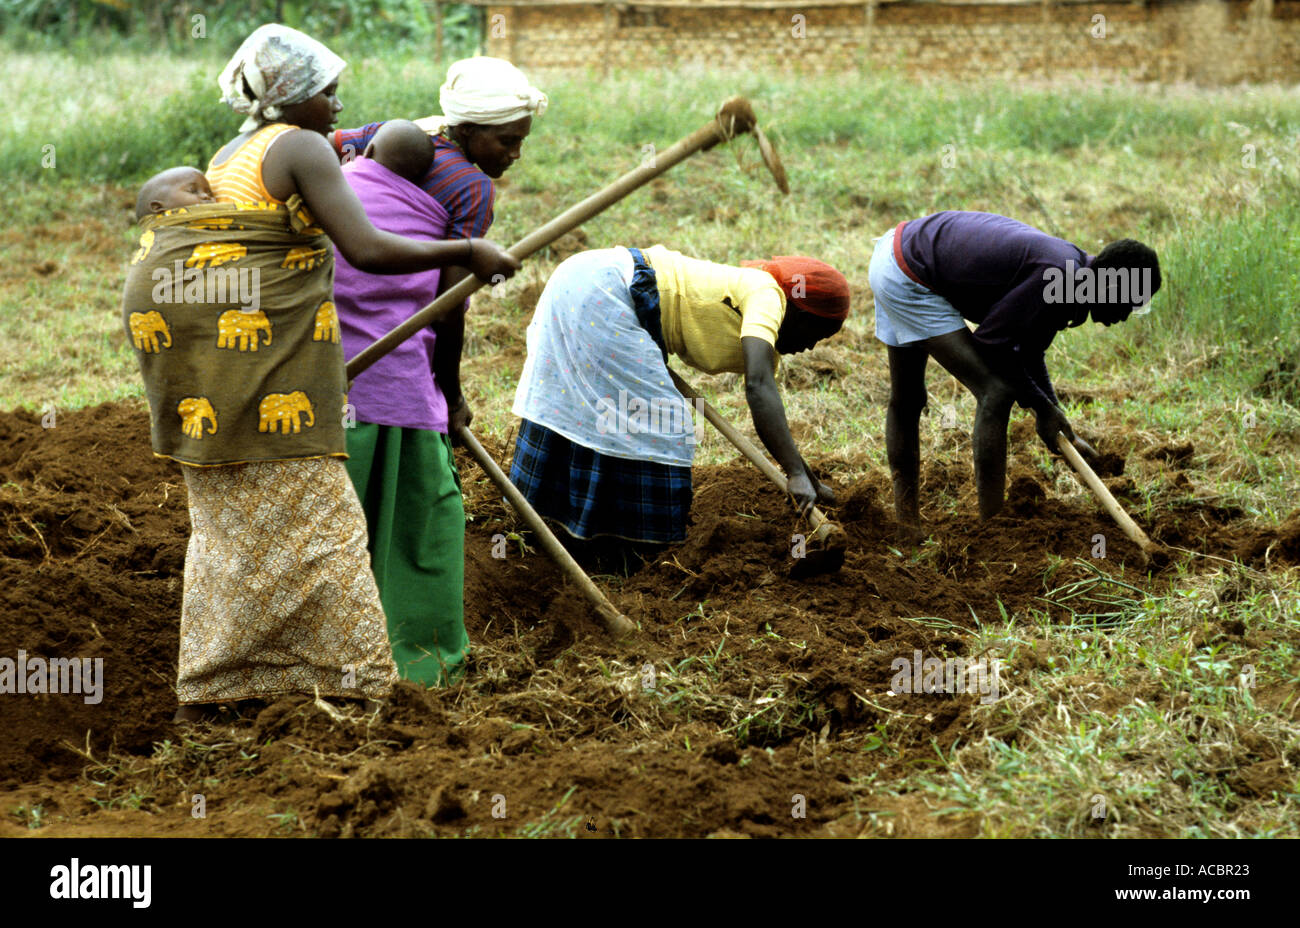 WOMEN CULTIVATING USING WITH BASIC TOOLS IN RWANDA Stock Photo